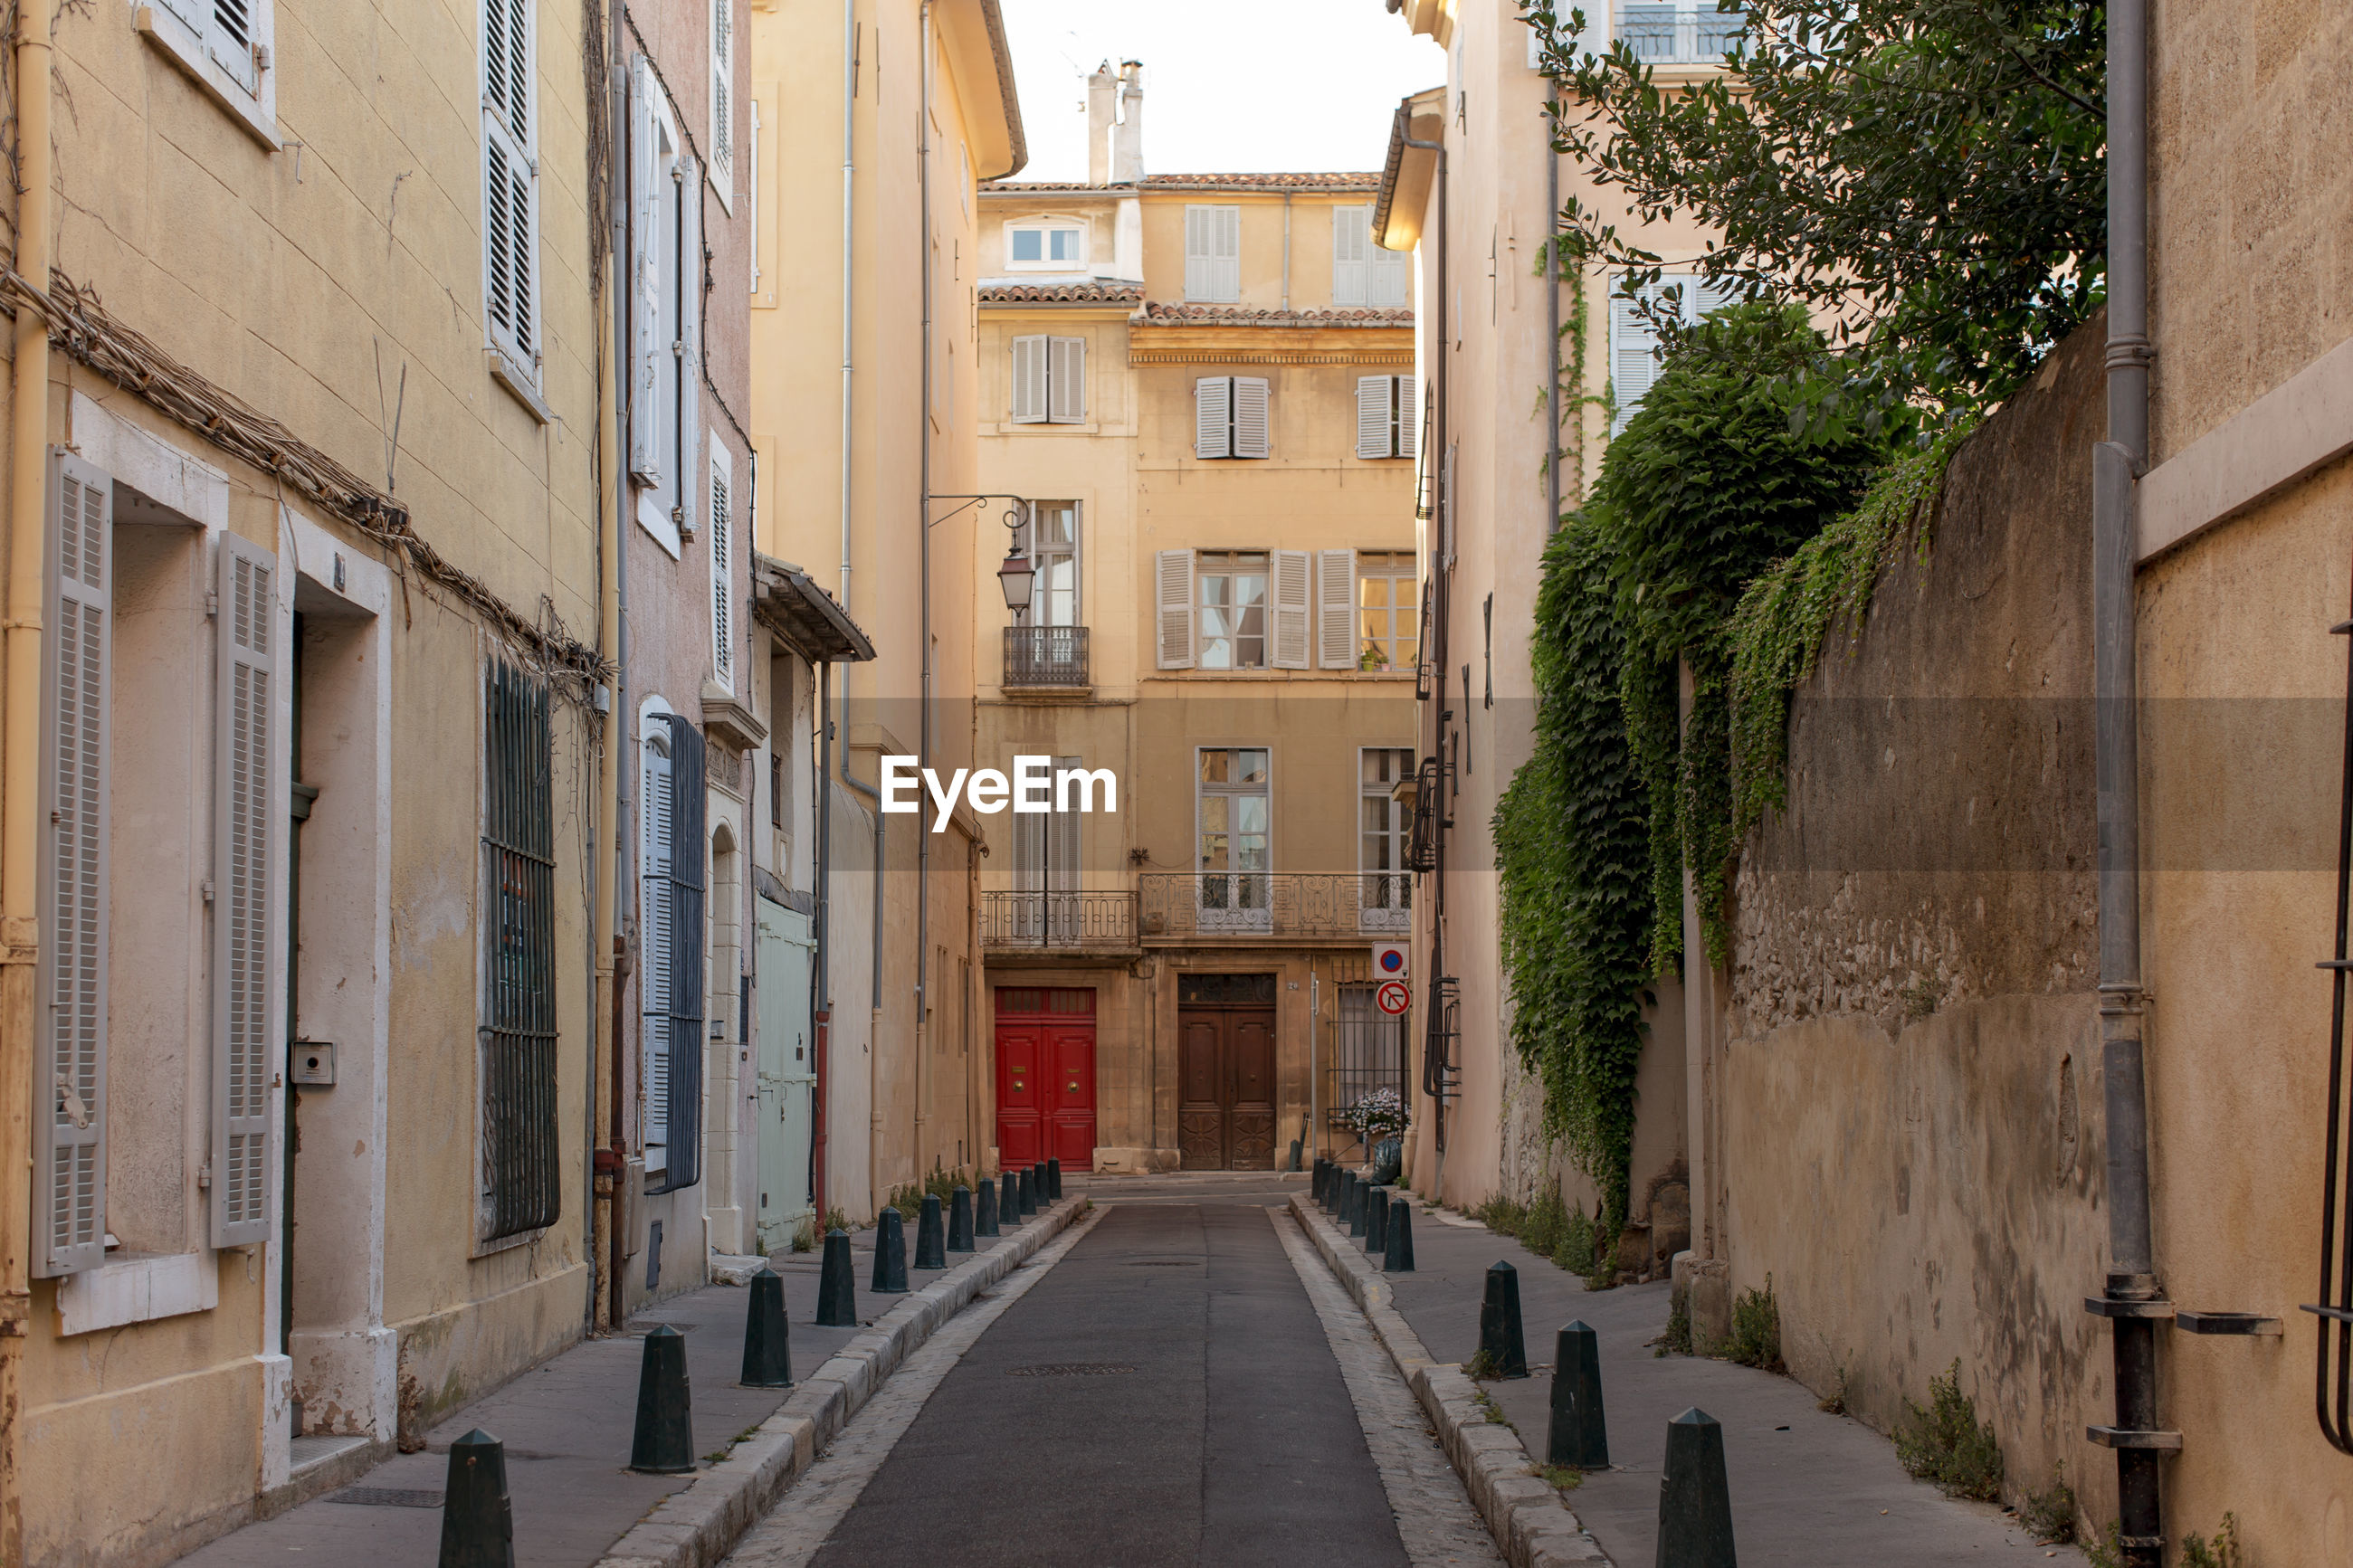 Old buildings along narrow alley in france